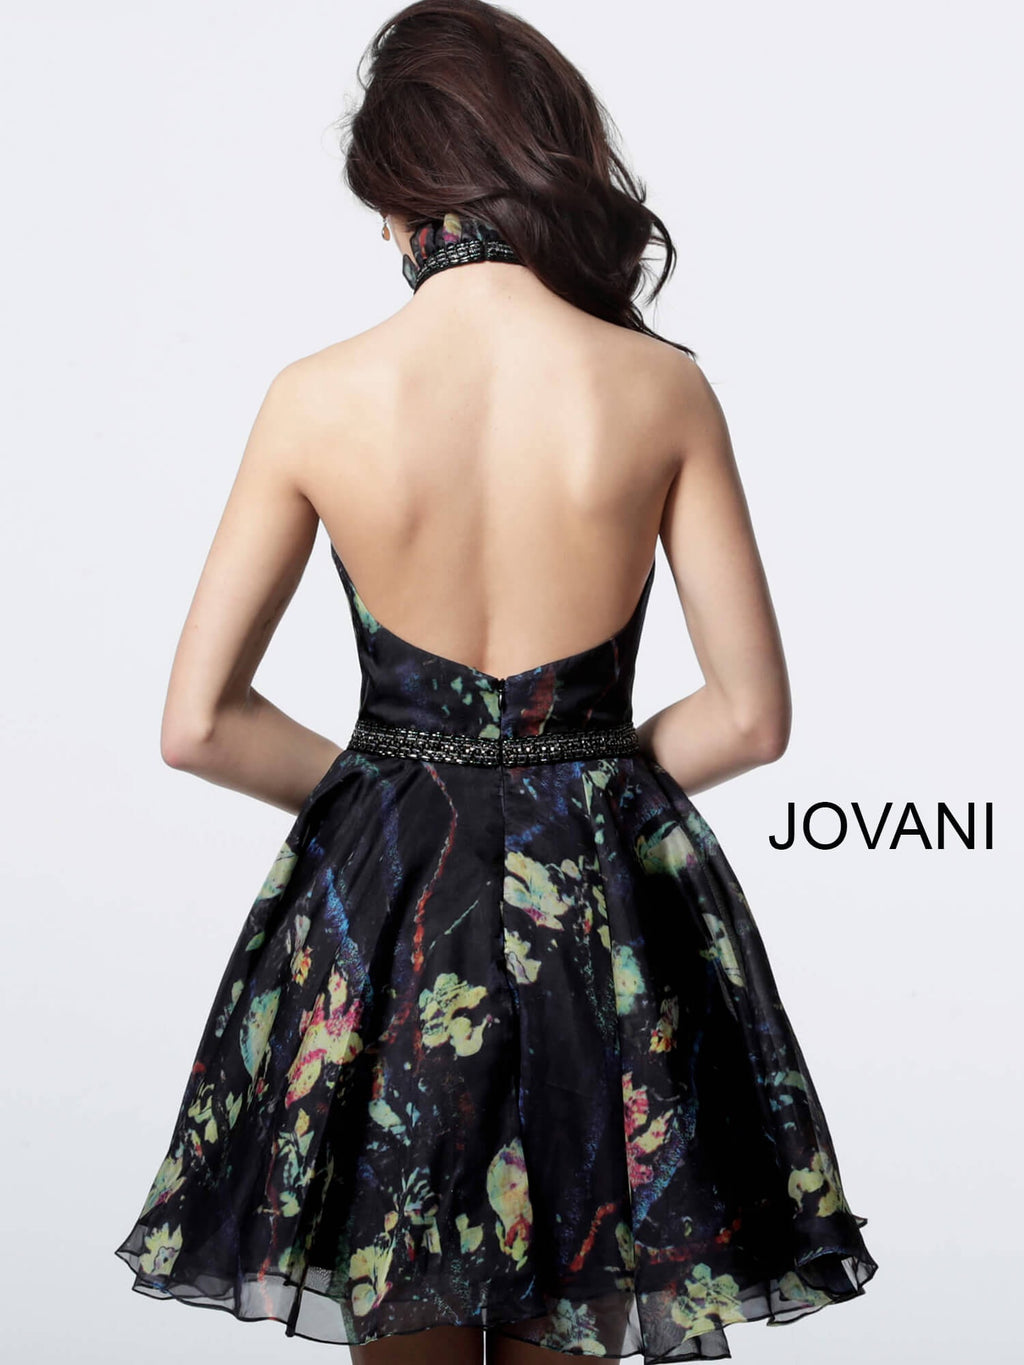 JOVANI 2026 Party Dress - CYC Boutique